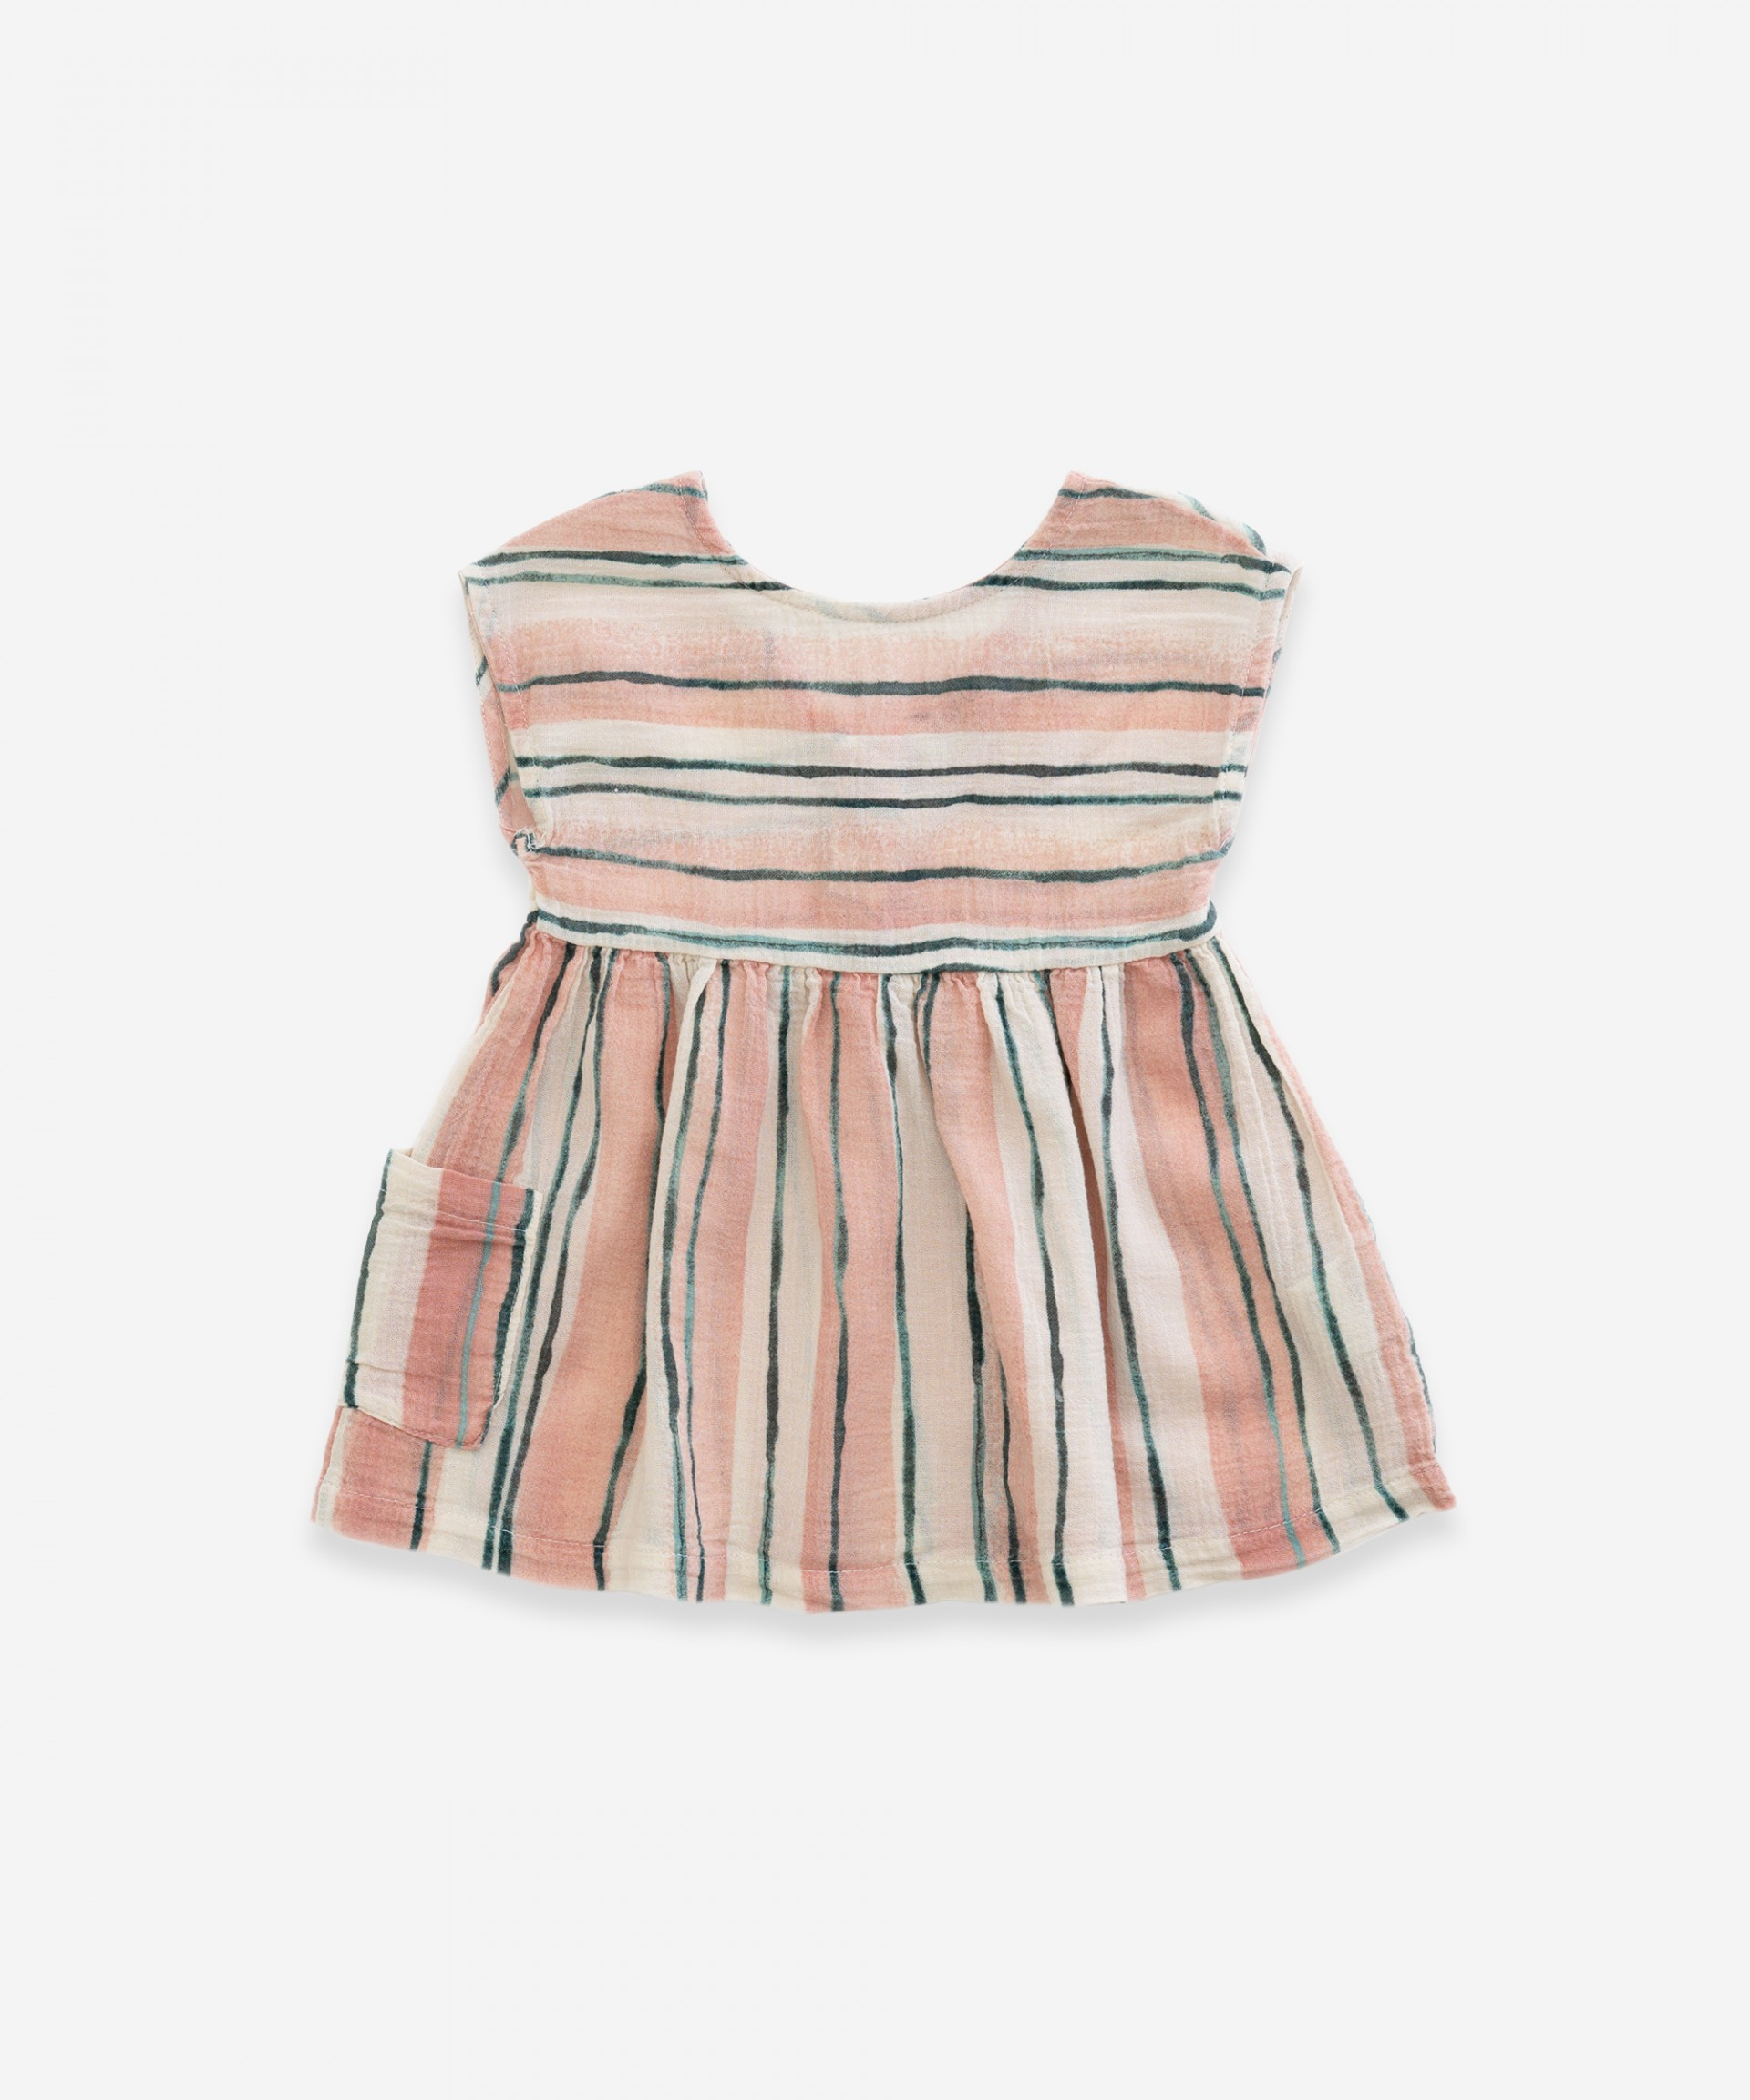 Fabric dress with pocket | Weaving